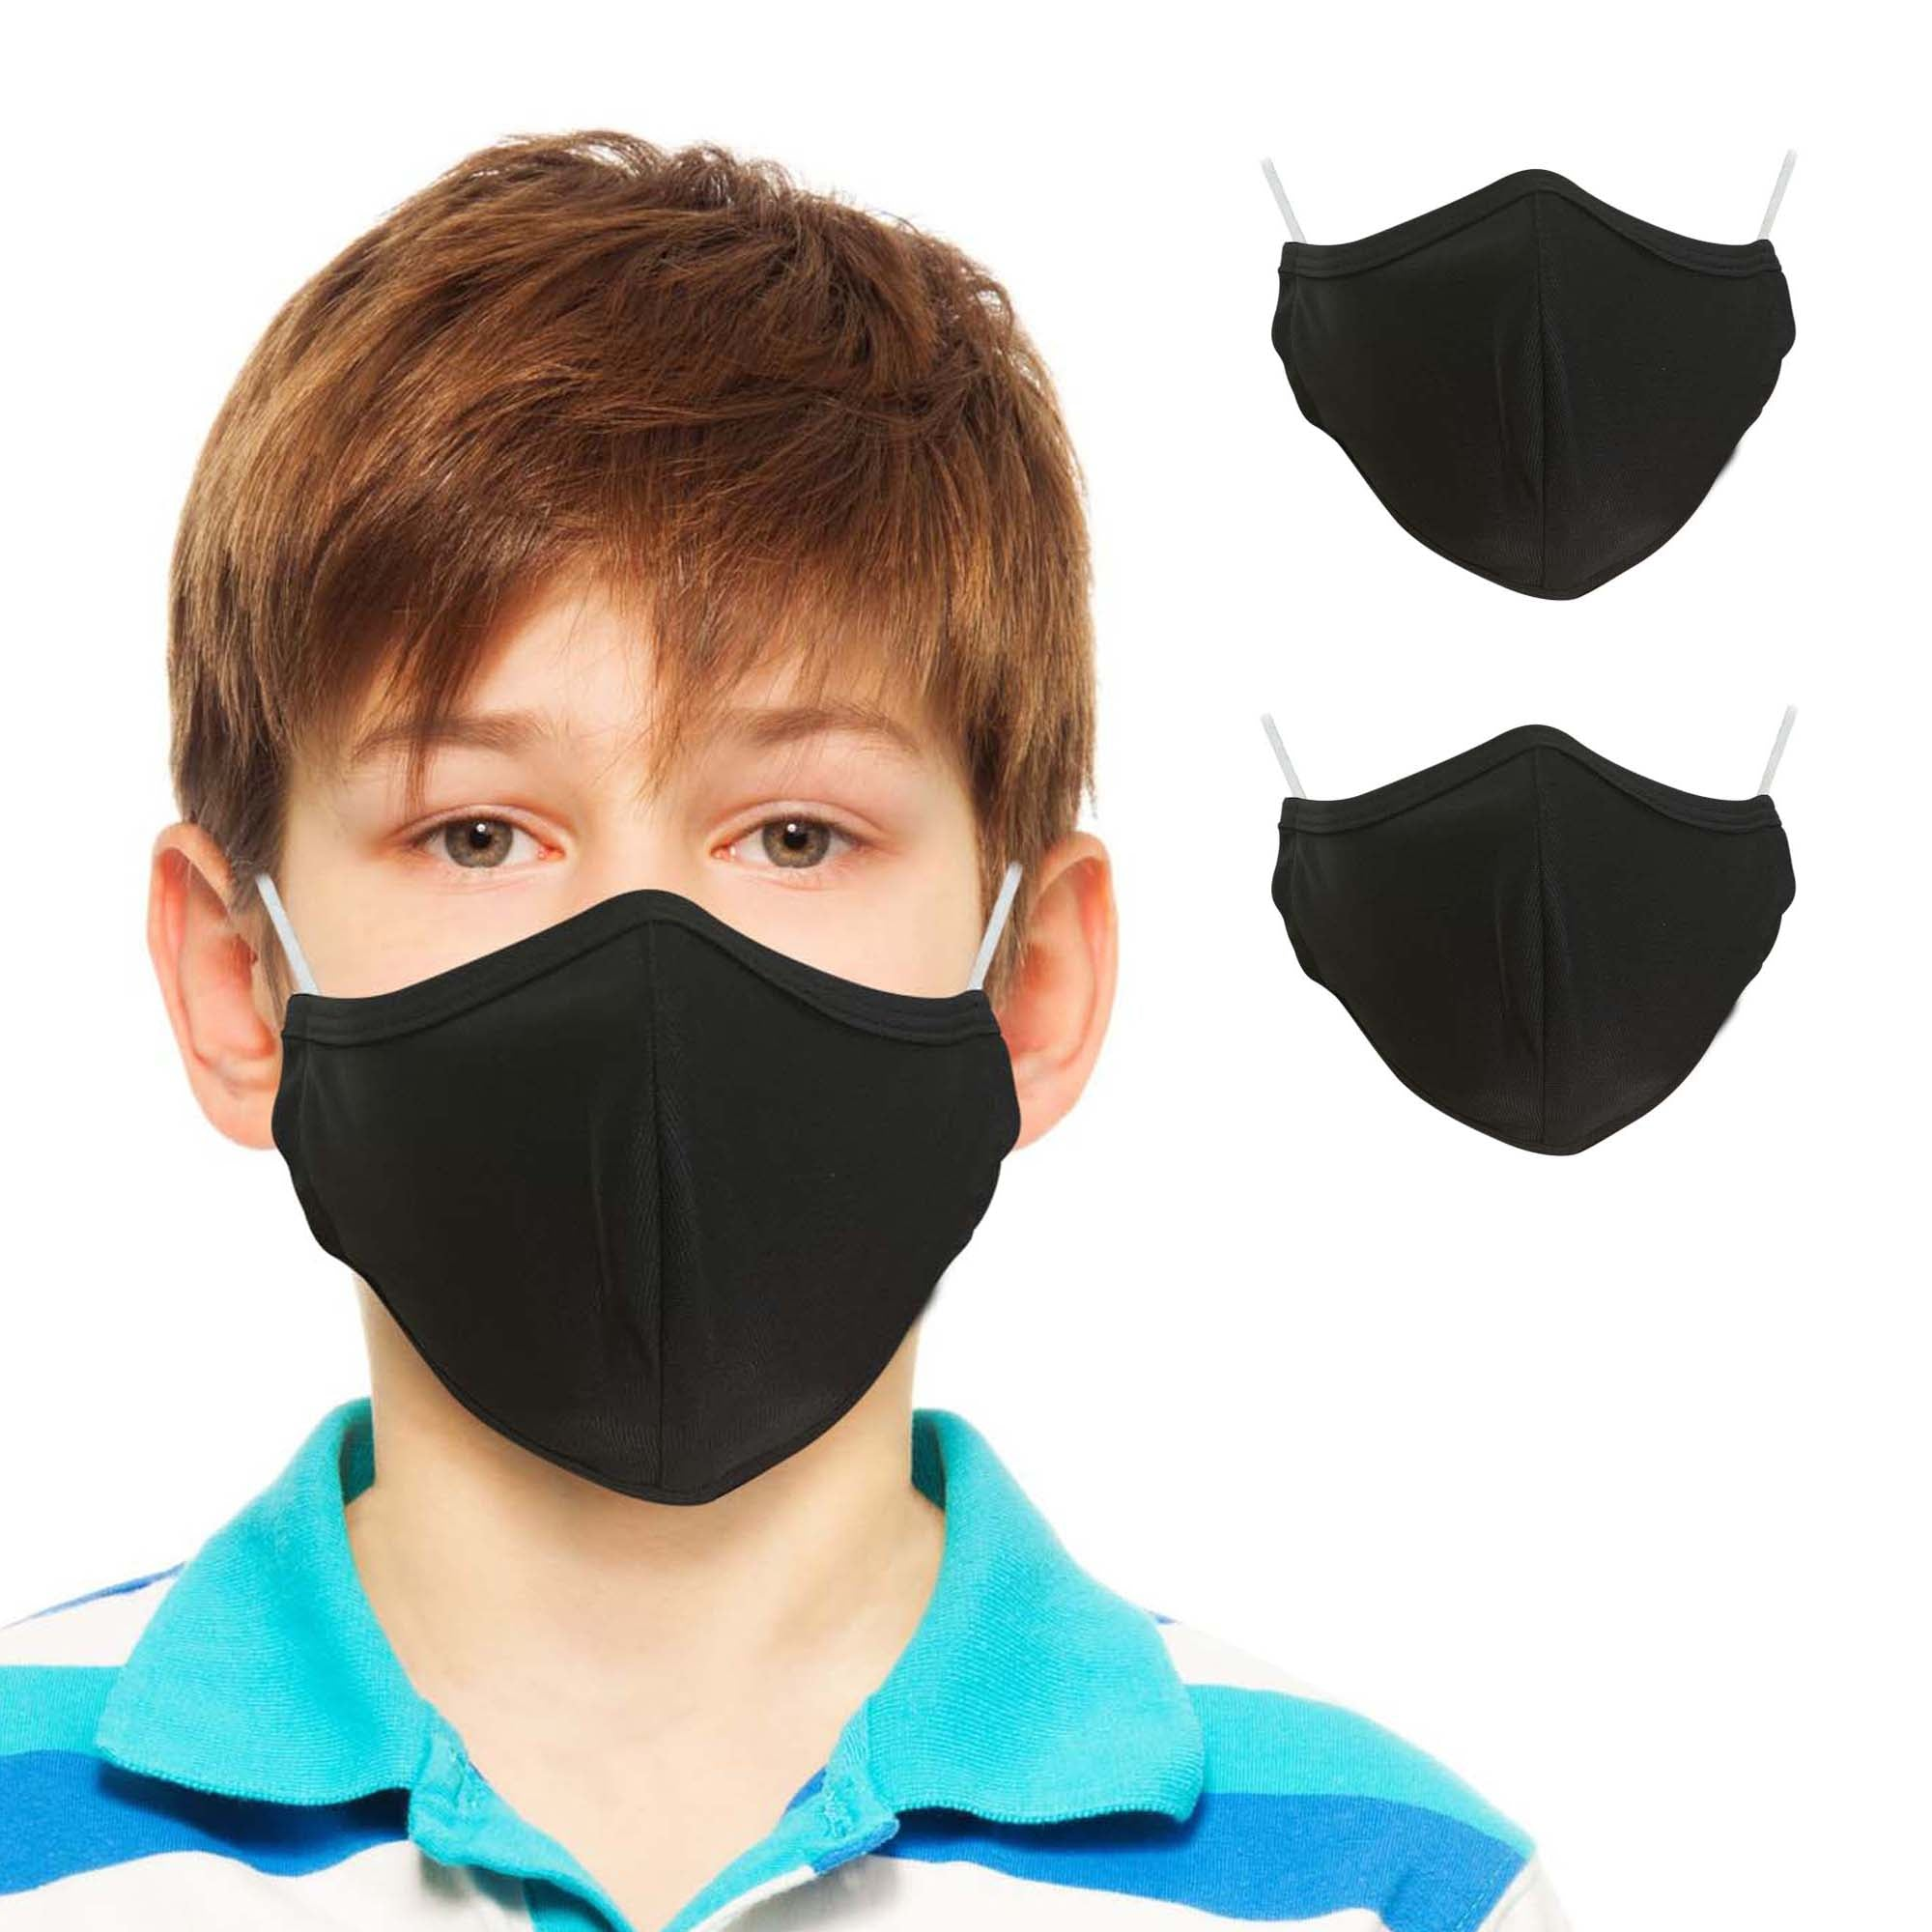 Fun & Cheery Plain Face Masks for Kids (2-pack) - primewareinc